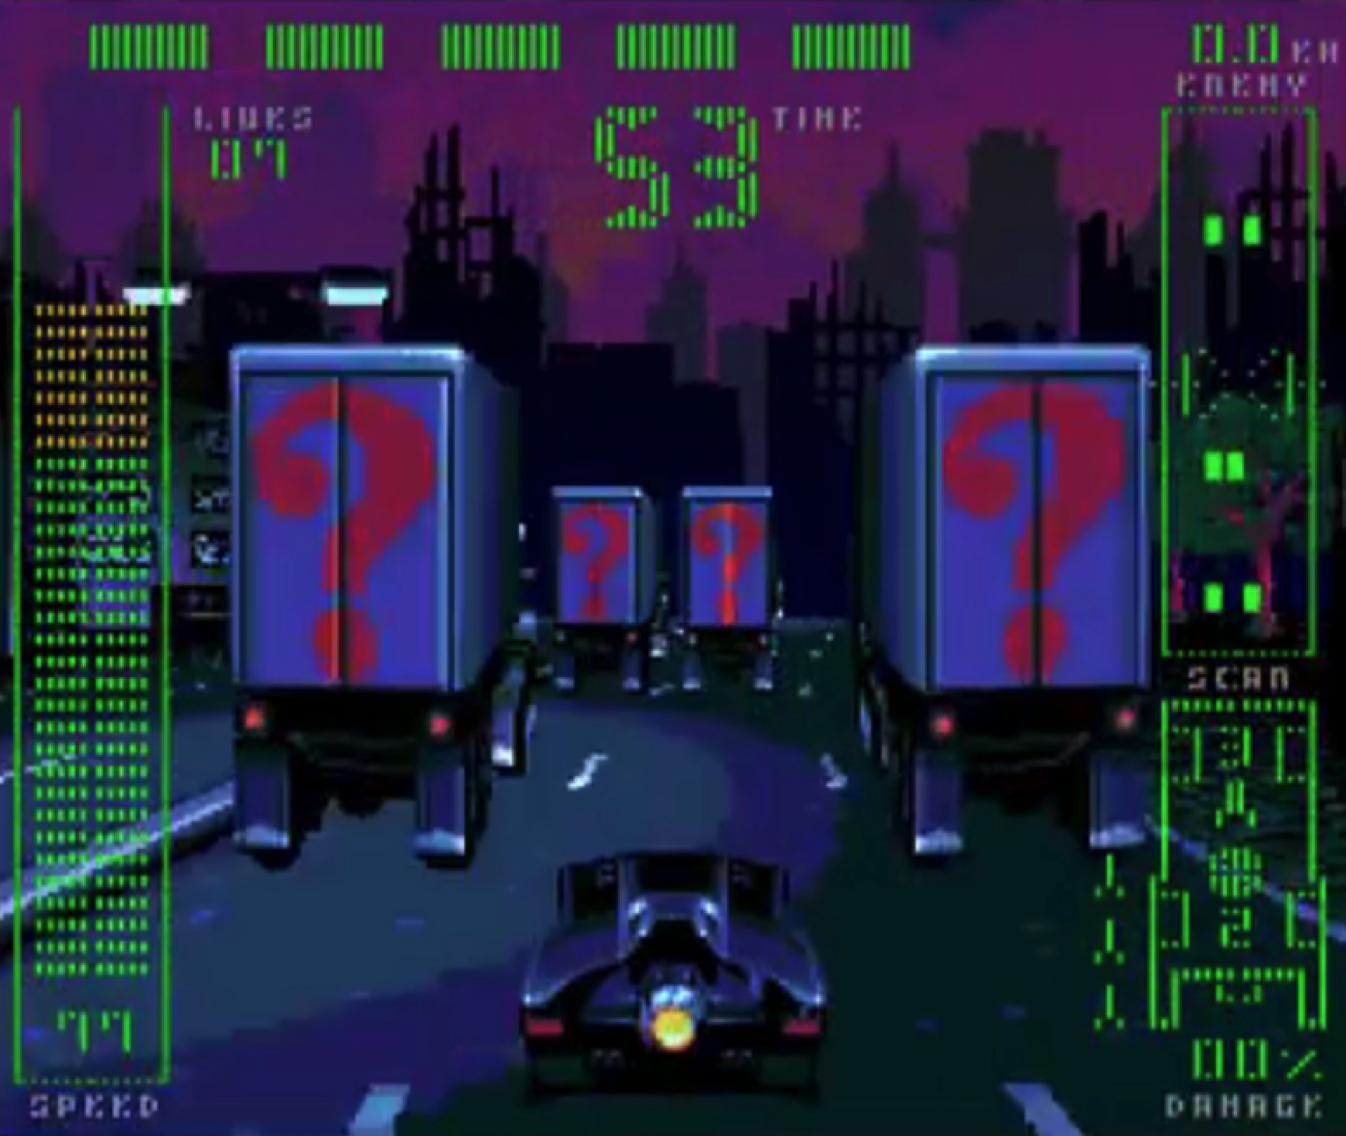 [7 Jogos Indispensáveis] - SEGA CD Retro_review_the_adventures_of_batman_and_robin_sega_CD_batmobile